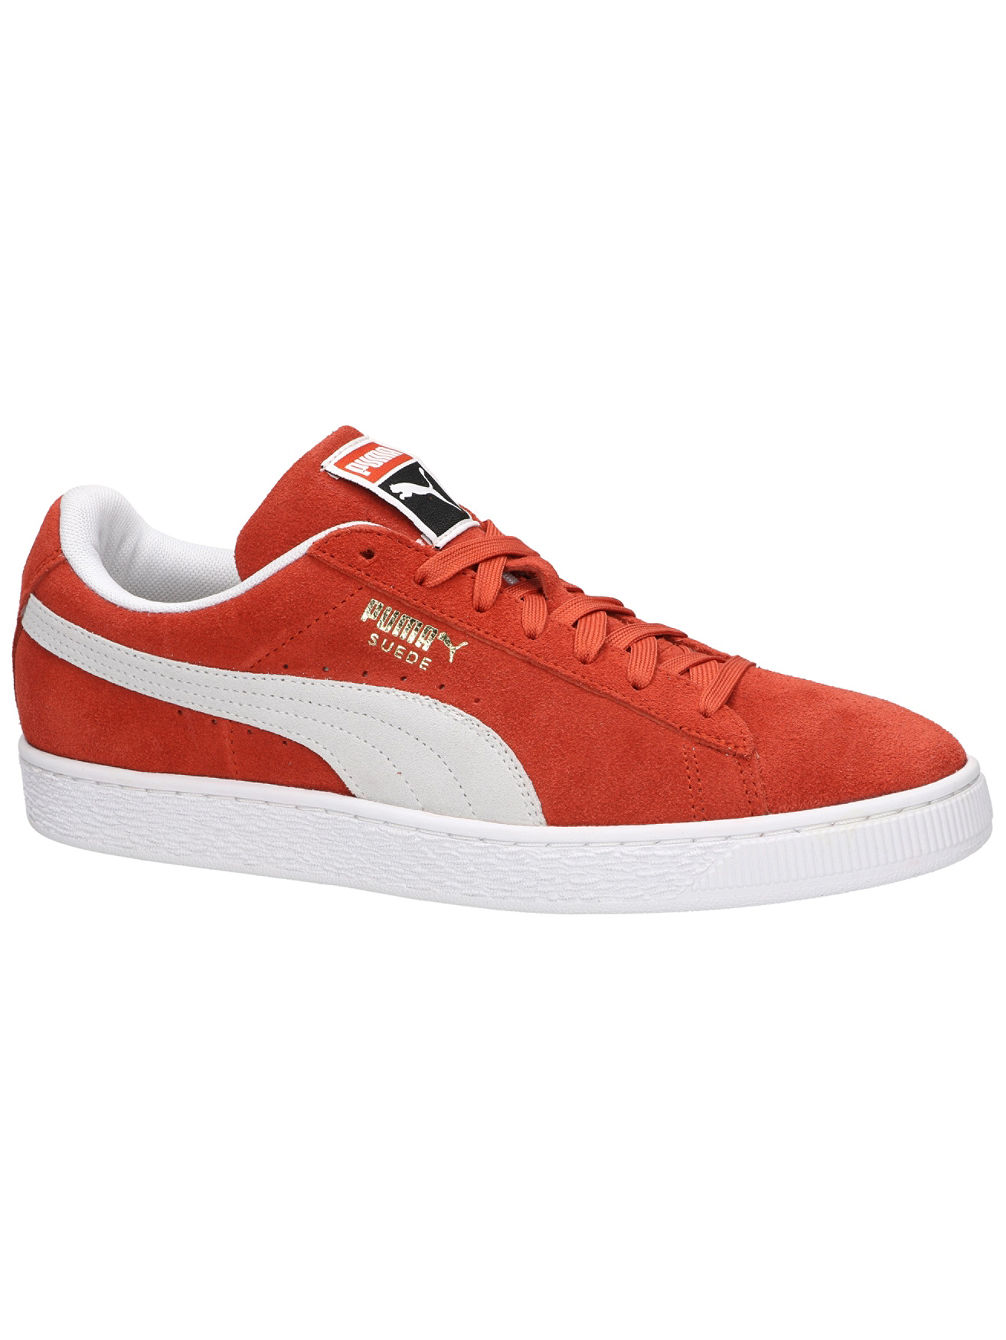 9c79d2a30f6 Buy Puma Suede Classic Sneakers online at blue-tomato.com